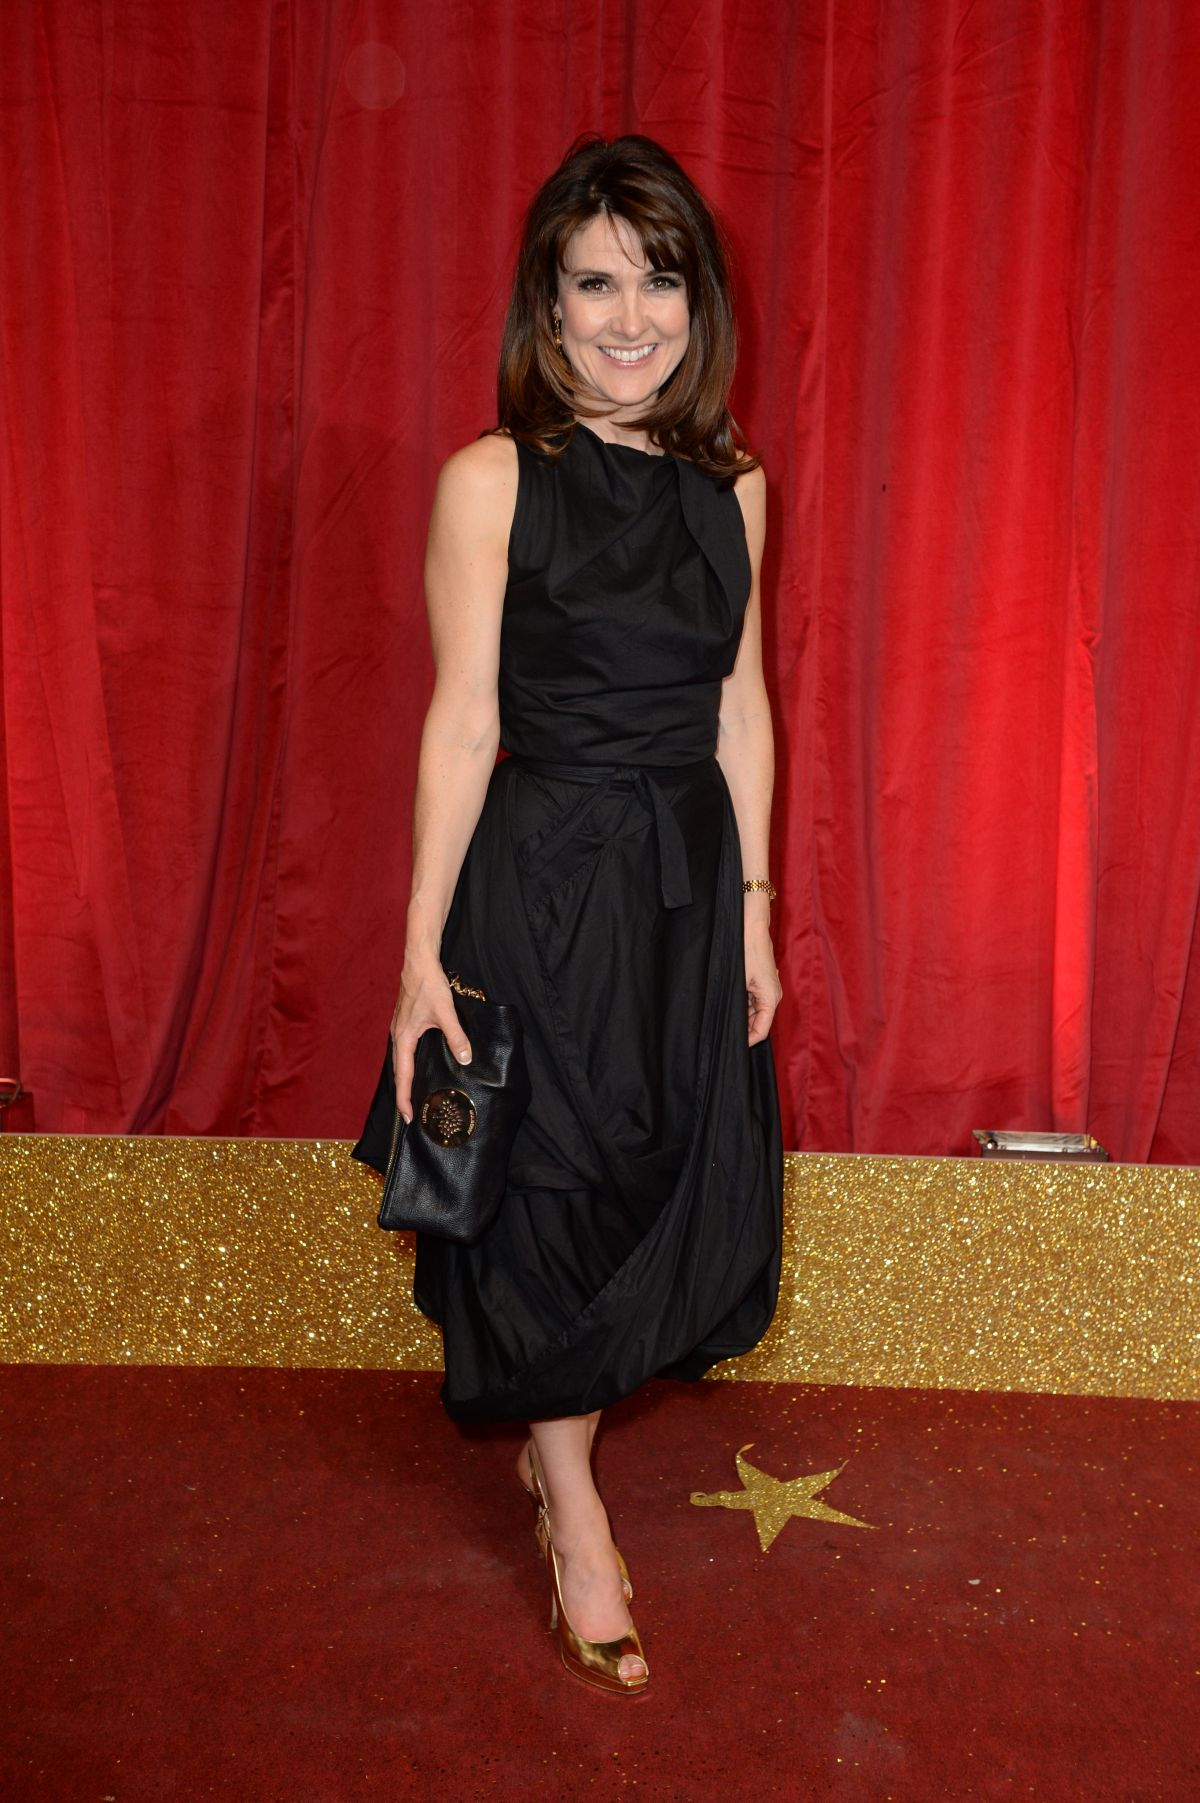 GILLIAN KEARNEY at British Soap Awards 2016 in London 05/28/2016